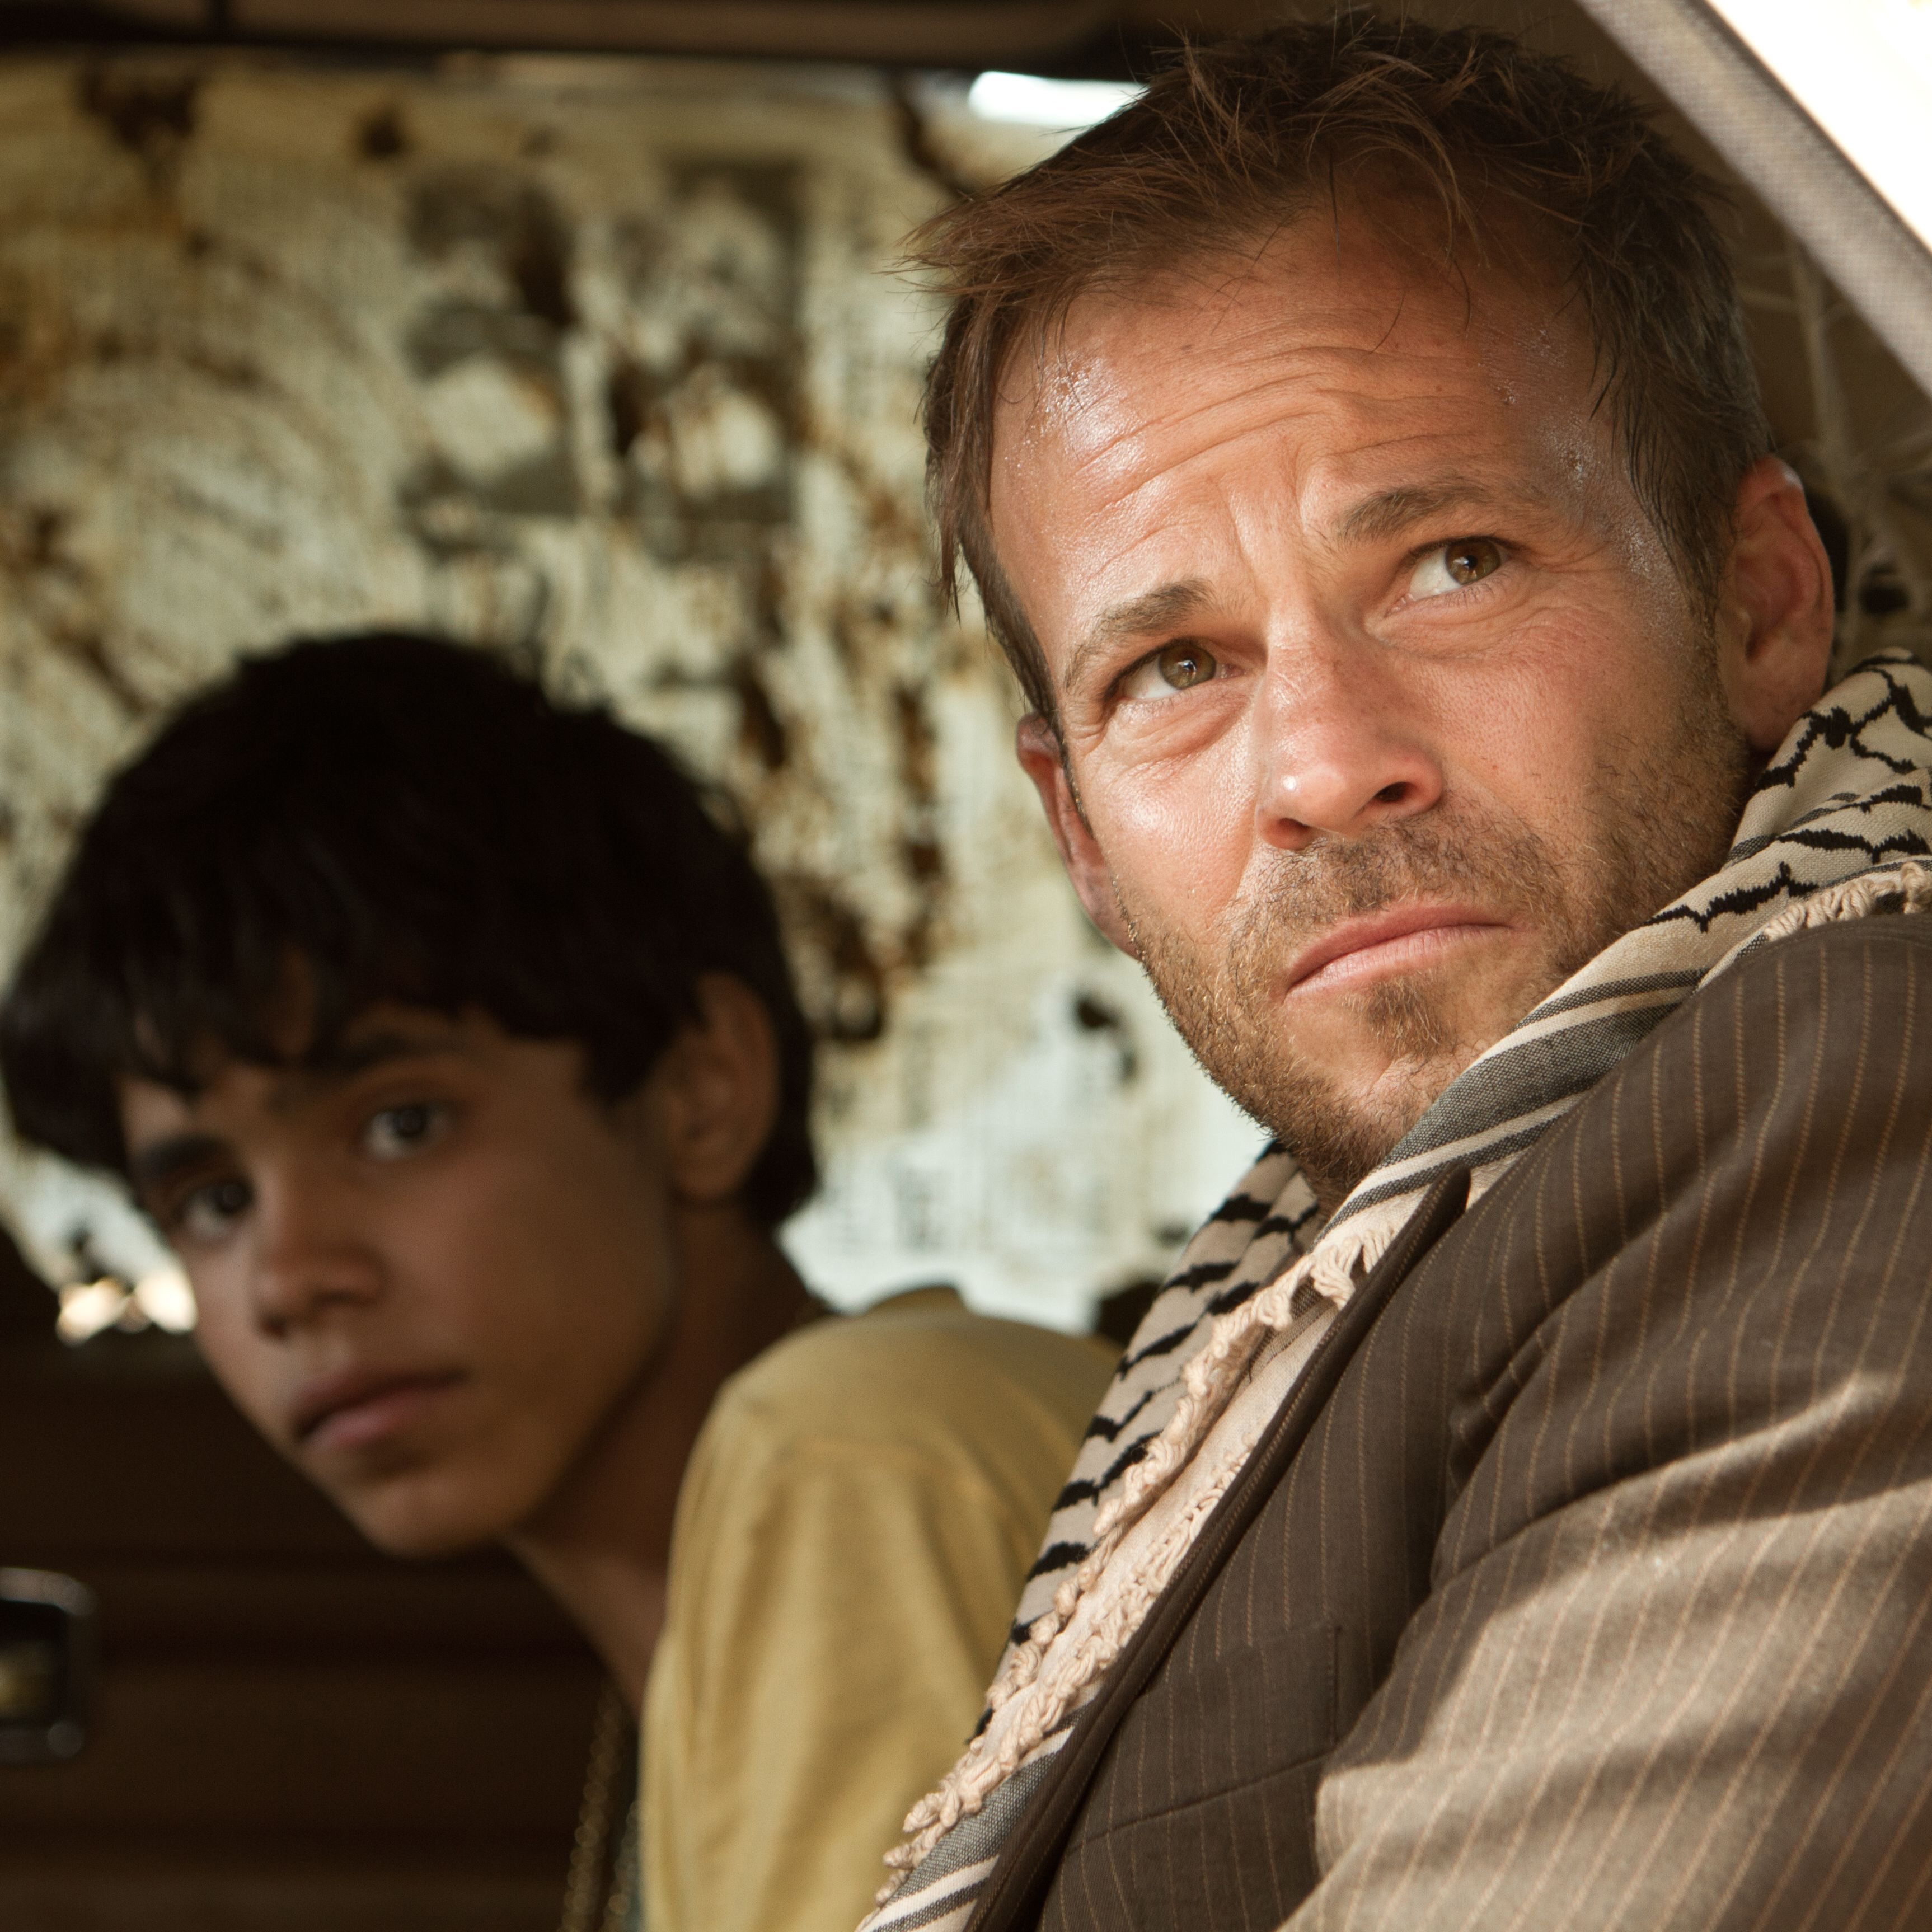 Stephen Dorff as Yoni and Abdallah El Akal as Fahed